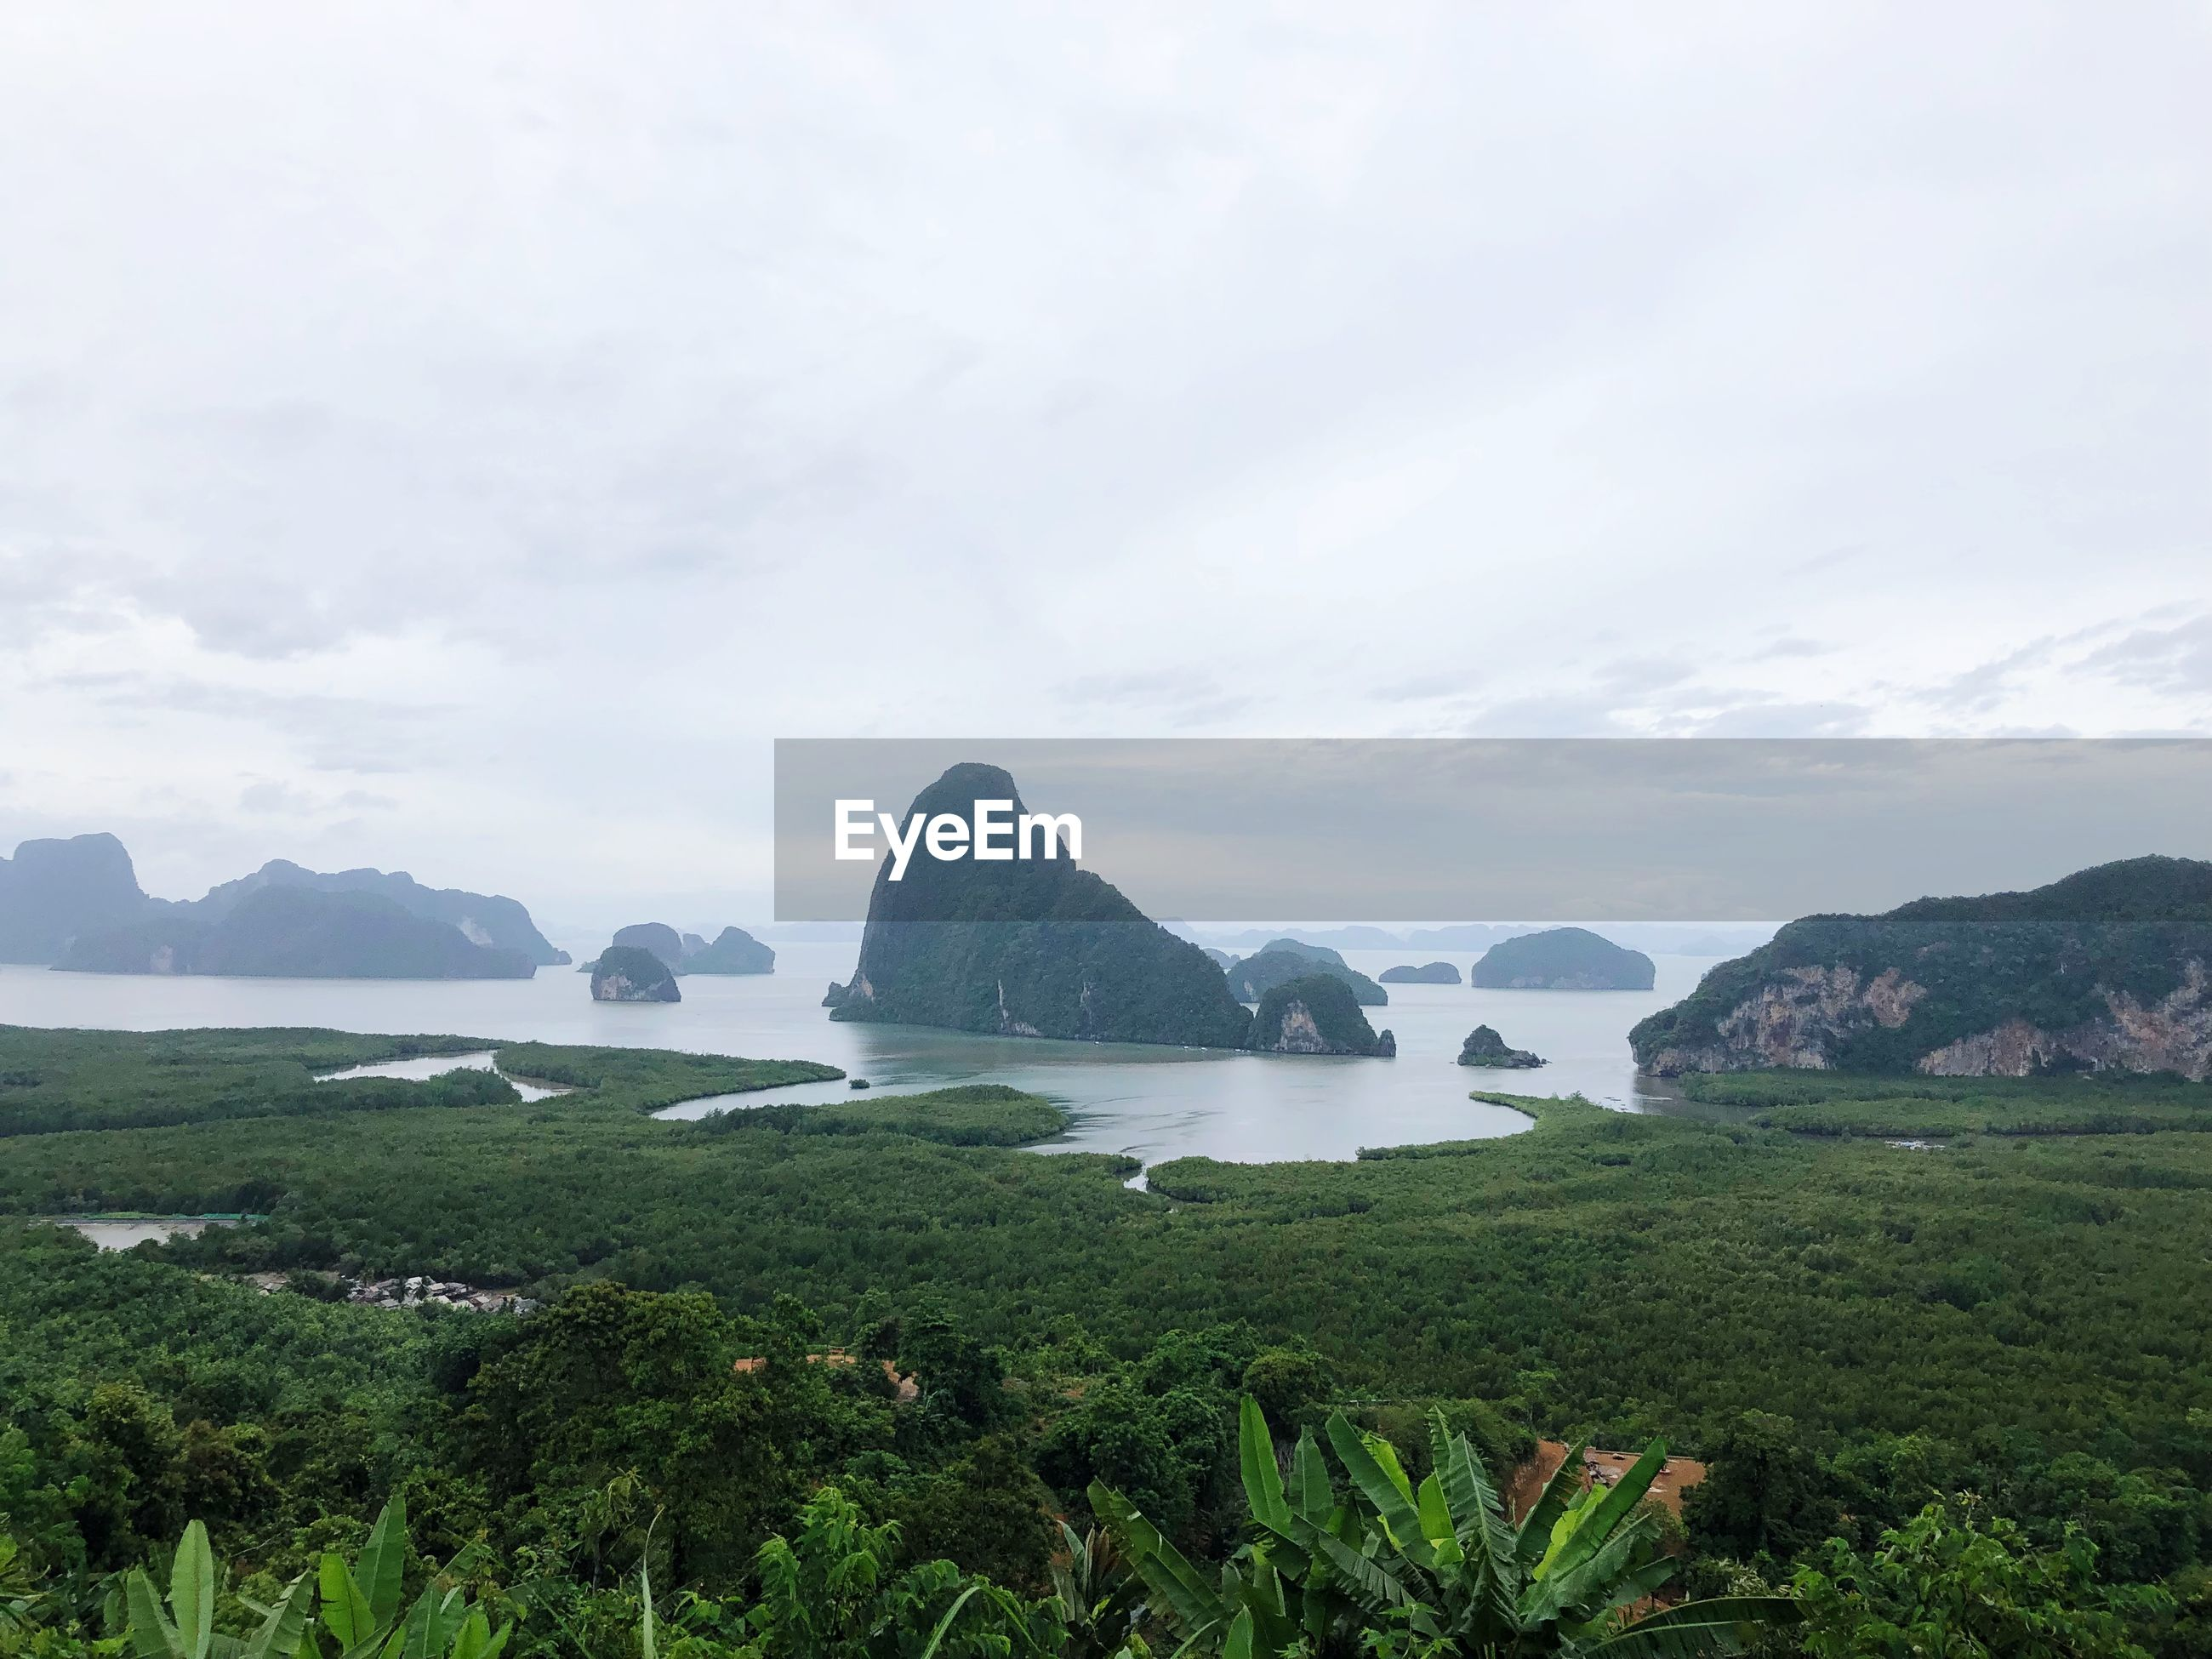 SCENIC VIEW OF SEA AND MOUNTAIN AGAINST SKY